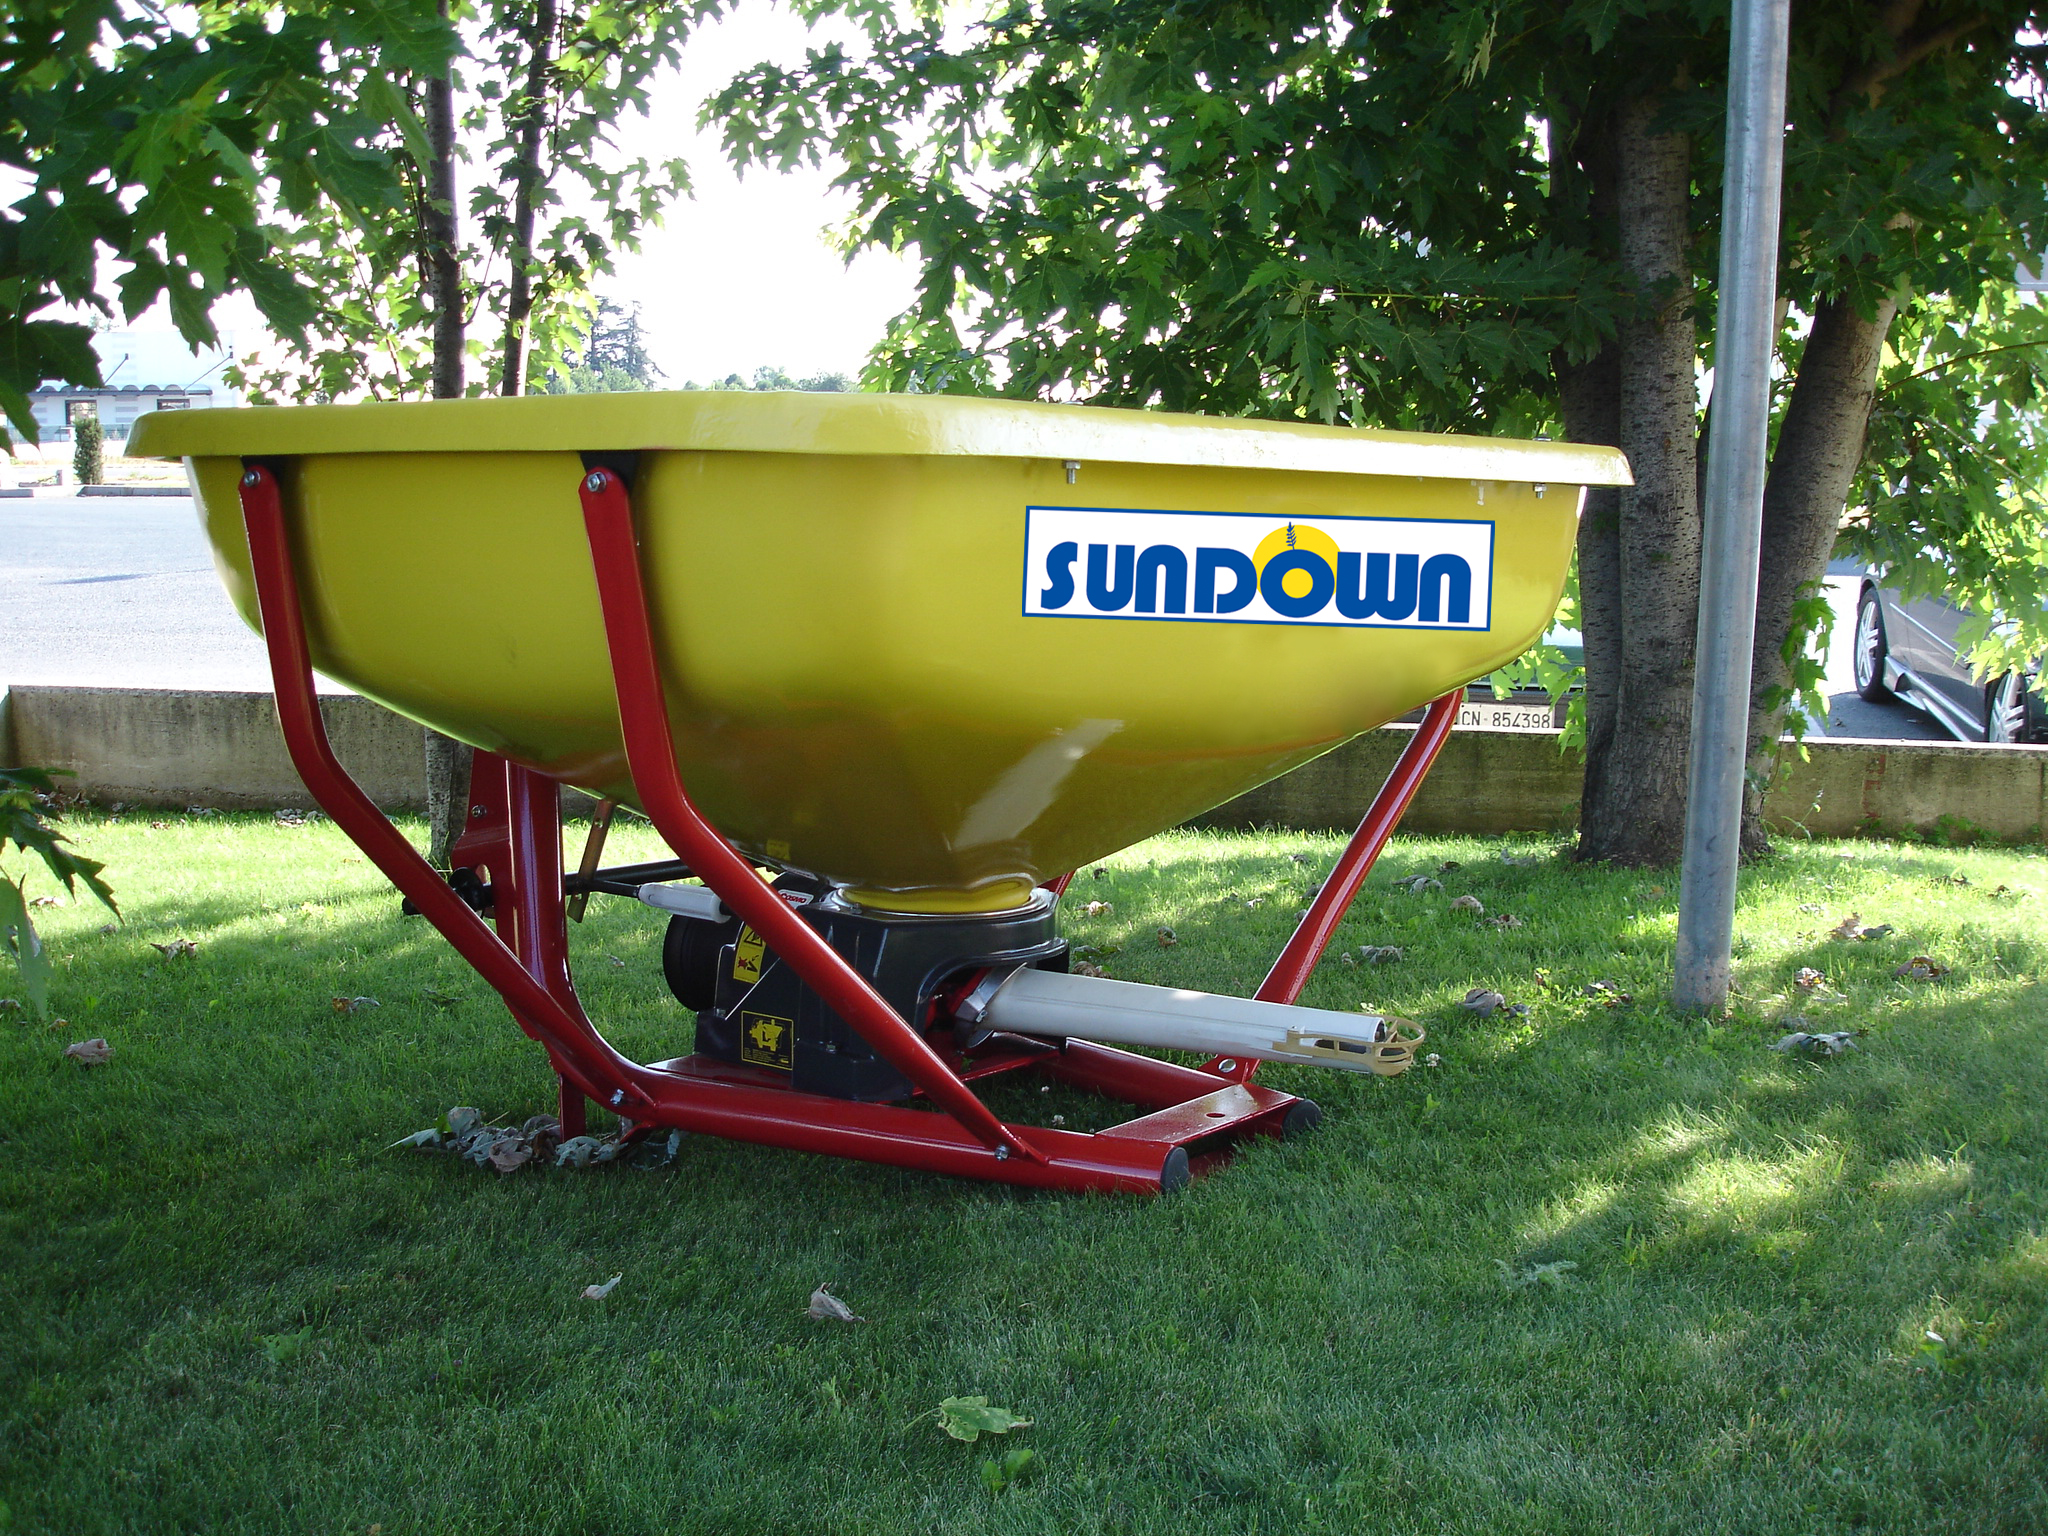 Sundown PDHV800 Pendulum Spreader 3 Pt. Hitch Model with Fiberglass Hopper & PTO for 2000 lb. Capacity